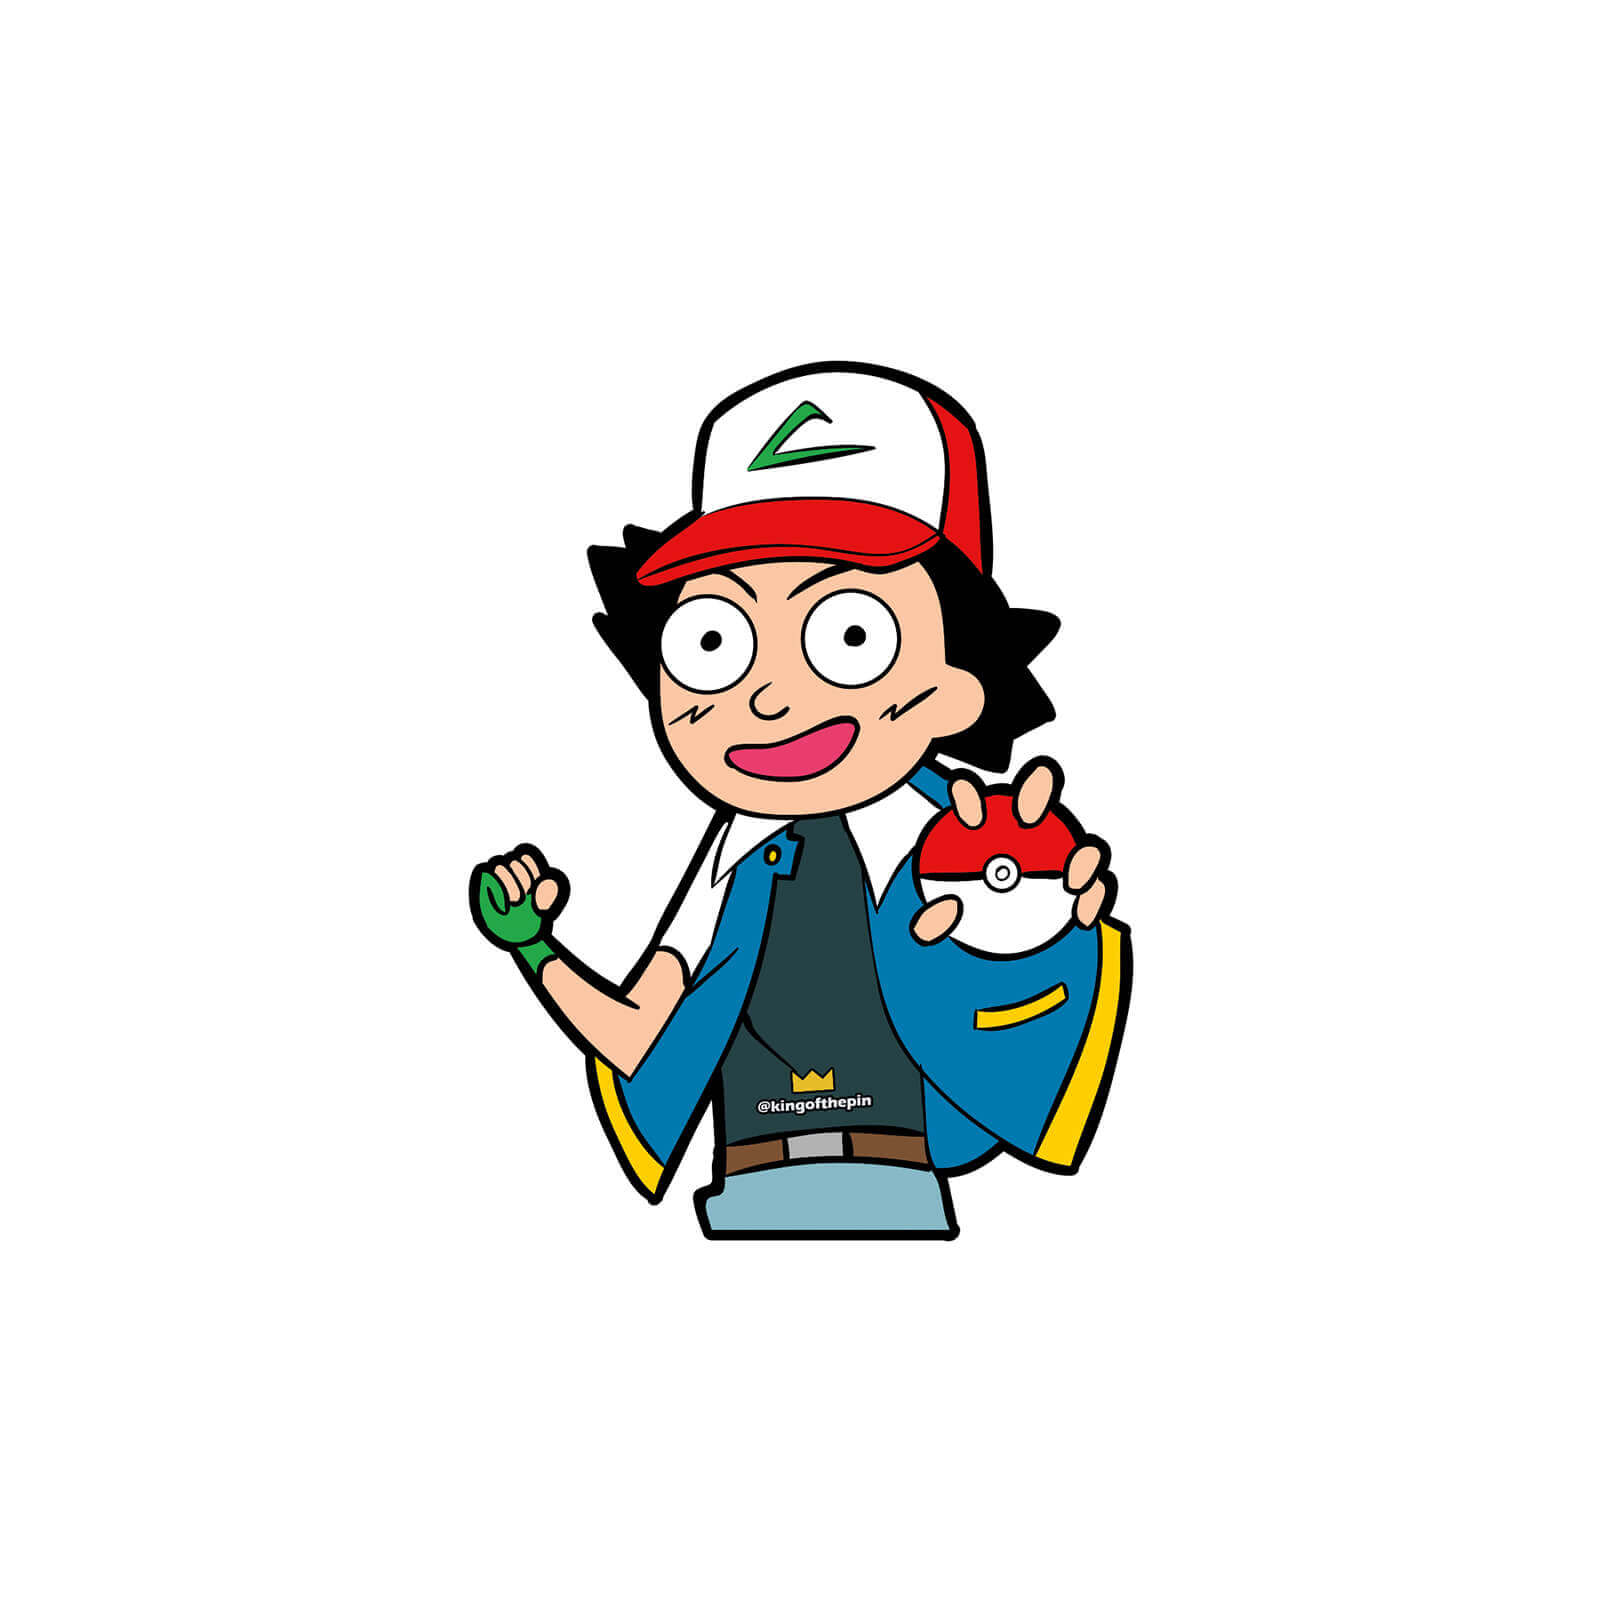 c308907da21 Morty Ketchum (Rick & Morty x Pokemon) Sticker – KingofthePin